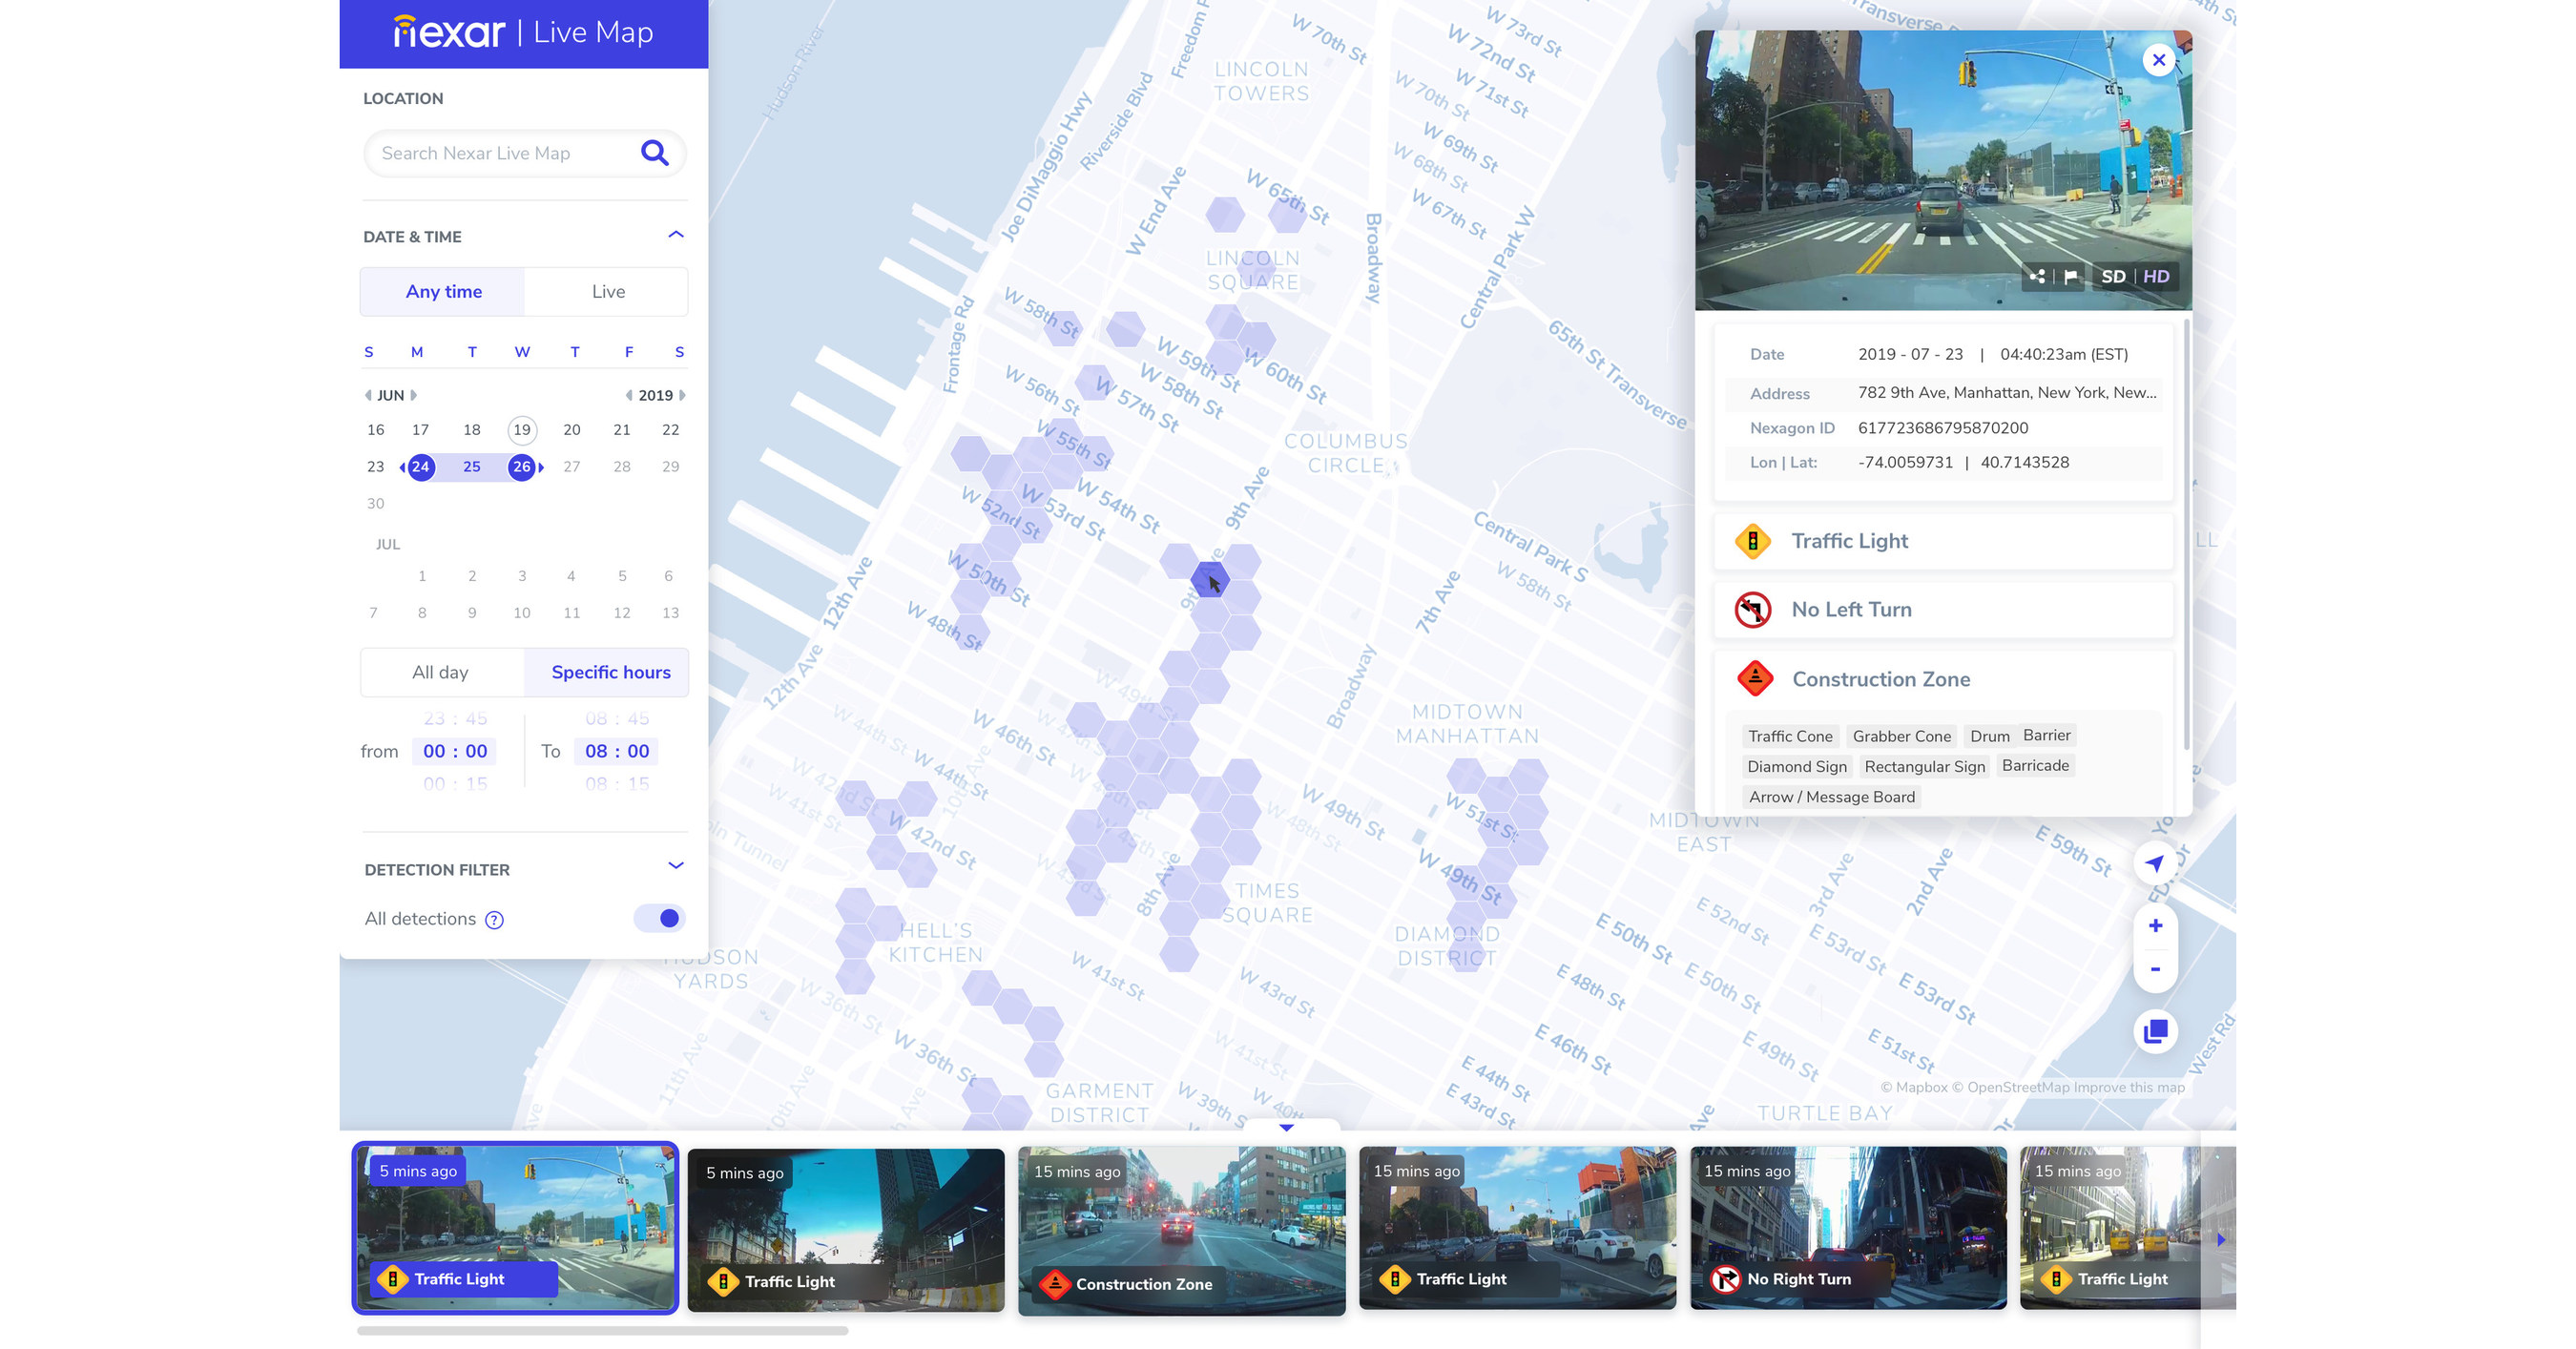 Nexar Launches Live Map, Taking On Google Street View